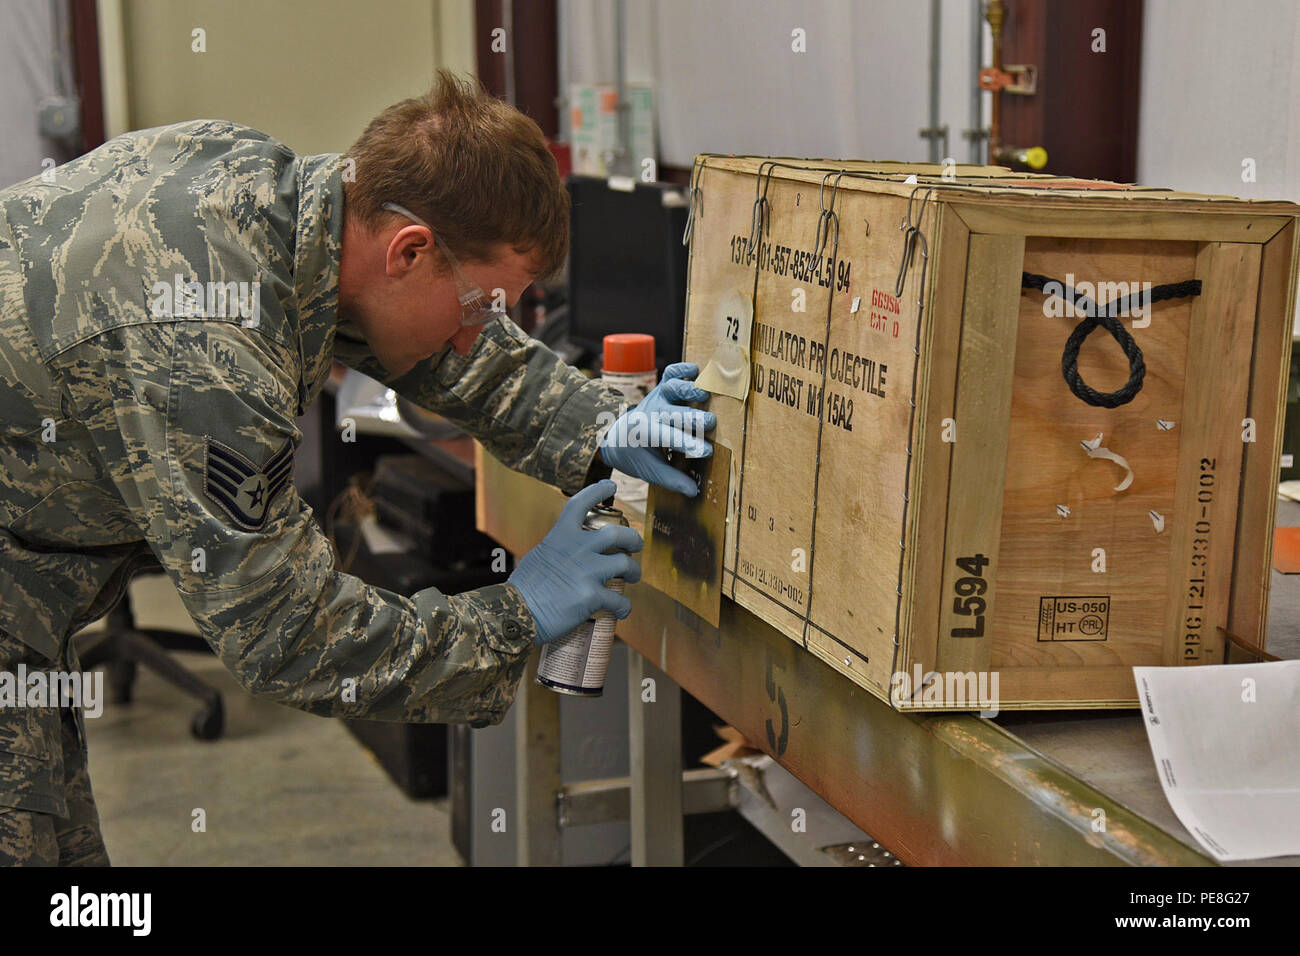 Staff Sgt. James Koenig, 92nd Maintenance Squadron senior munitions inspection, prepares a munitions package for account delivery and storage Oct. 28, 2015, at Fairchild Air Force Base, Wash. Koenig conducts a receiving inspection when shipments arrive and ensures boxes haven't been damaged. Munitions storage then moves the ammo to a superstructure storage location. (U.S. Air Force photo/Airman 1st Class Mackenzie Richardson) - Stock Image